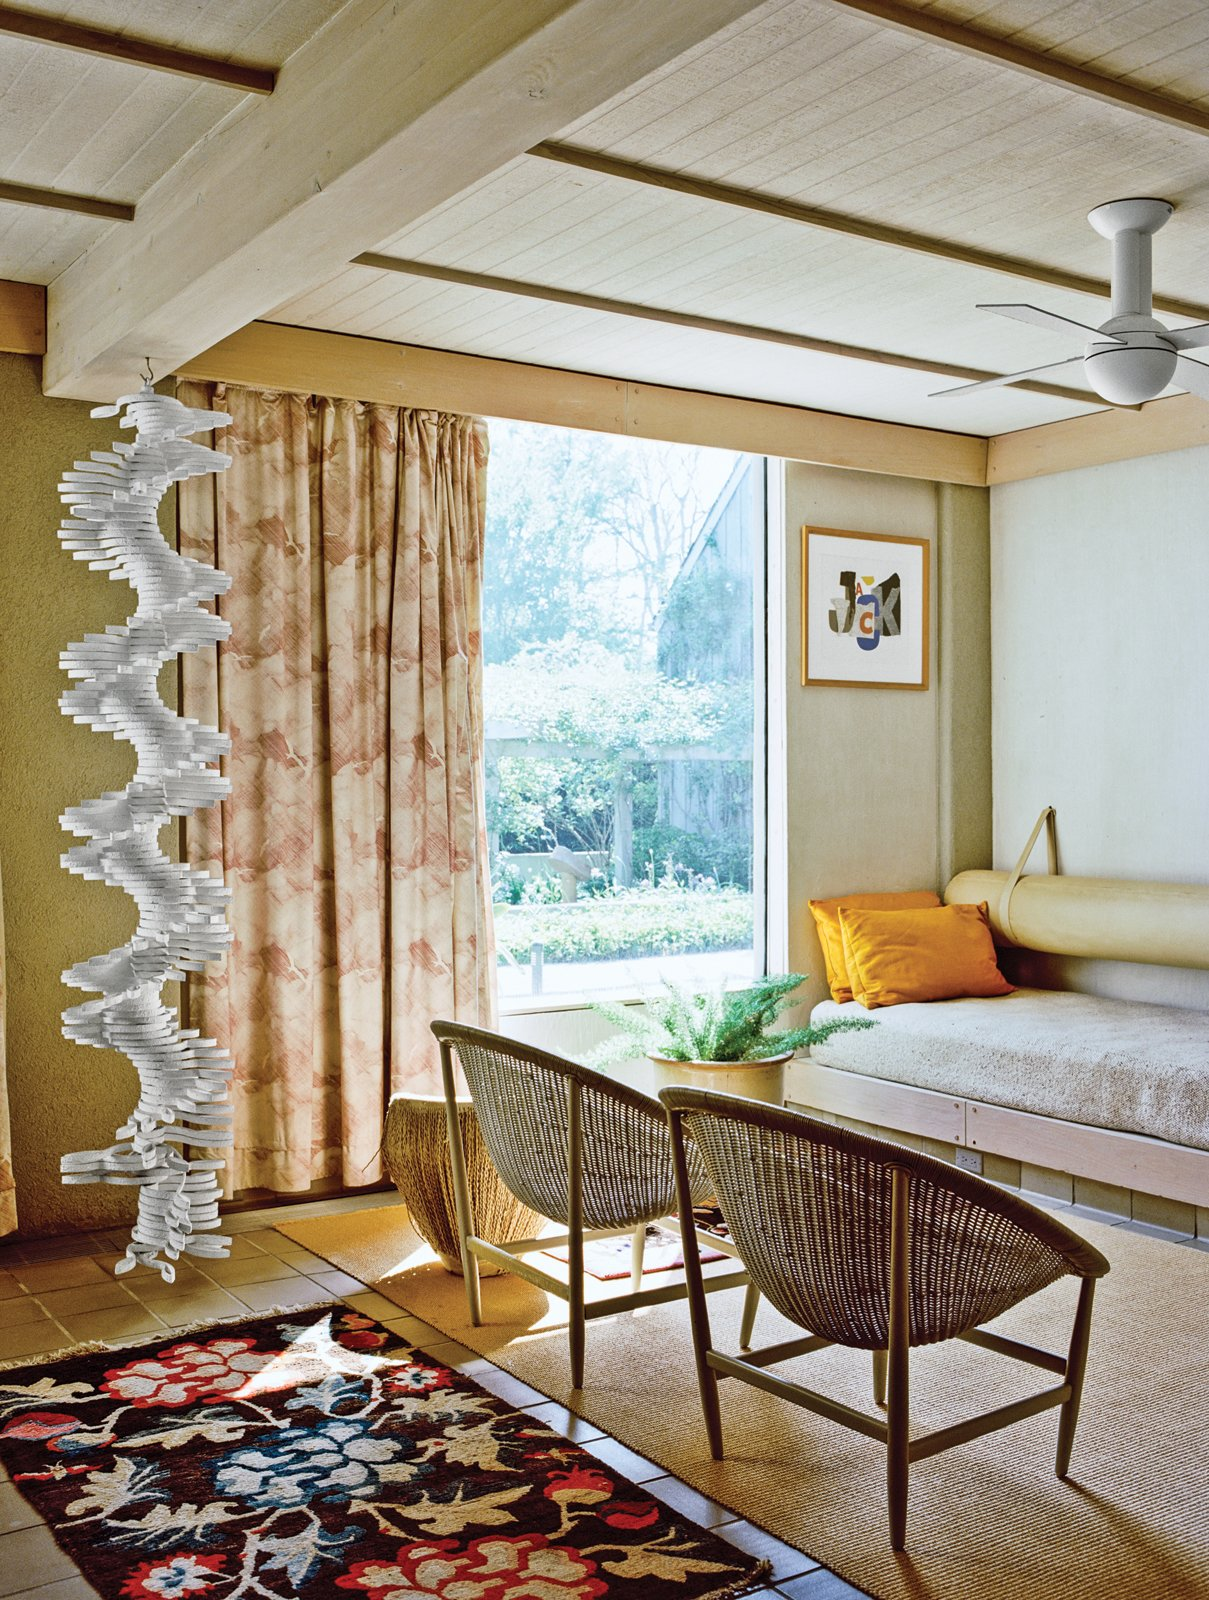 The ground-floor guest room sports built-in beds and a hanging sculpture by Robert Clark. Q&A with Textile Designer Jack Lenor Larsen - Photo 4 of 12